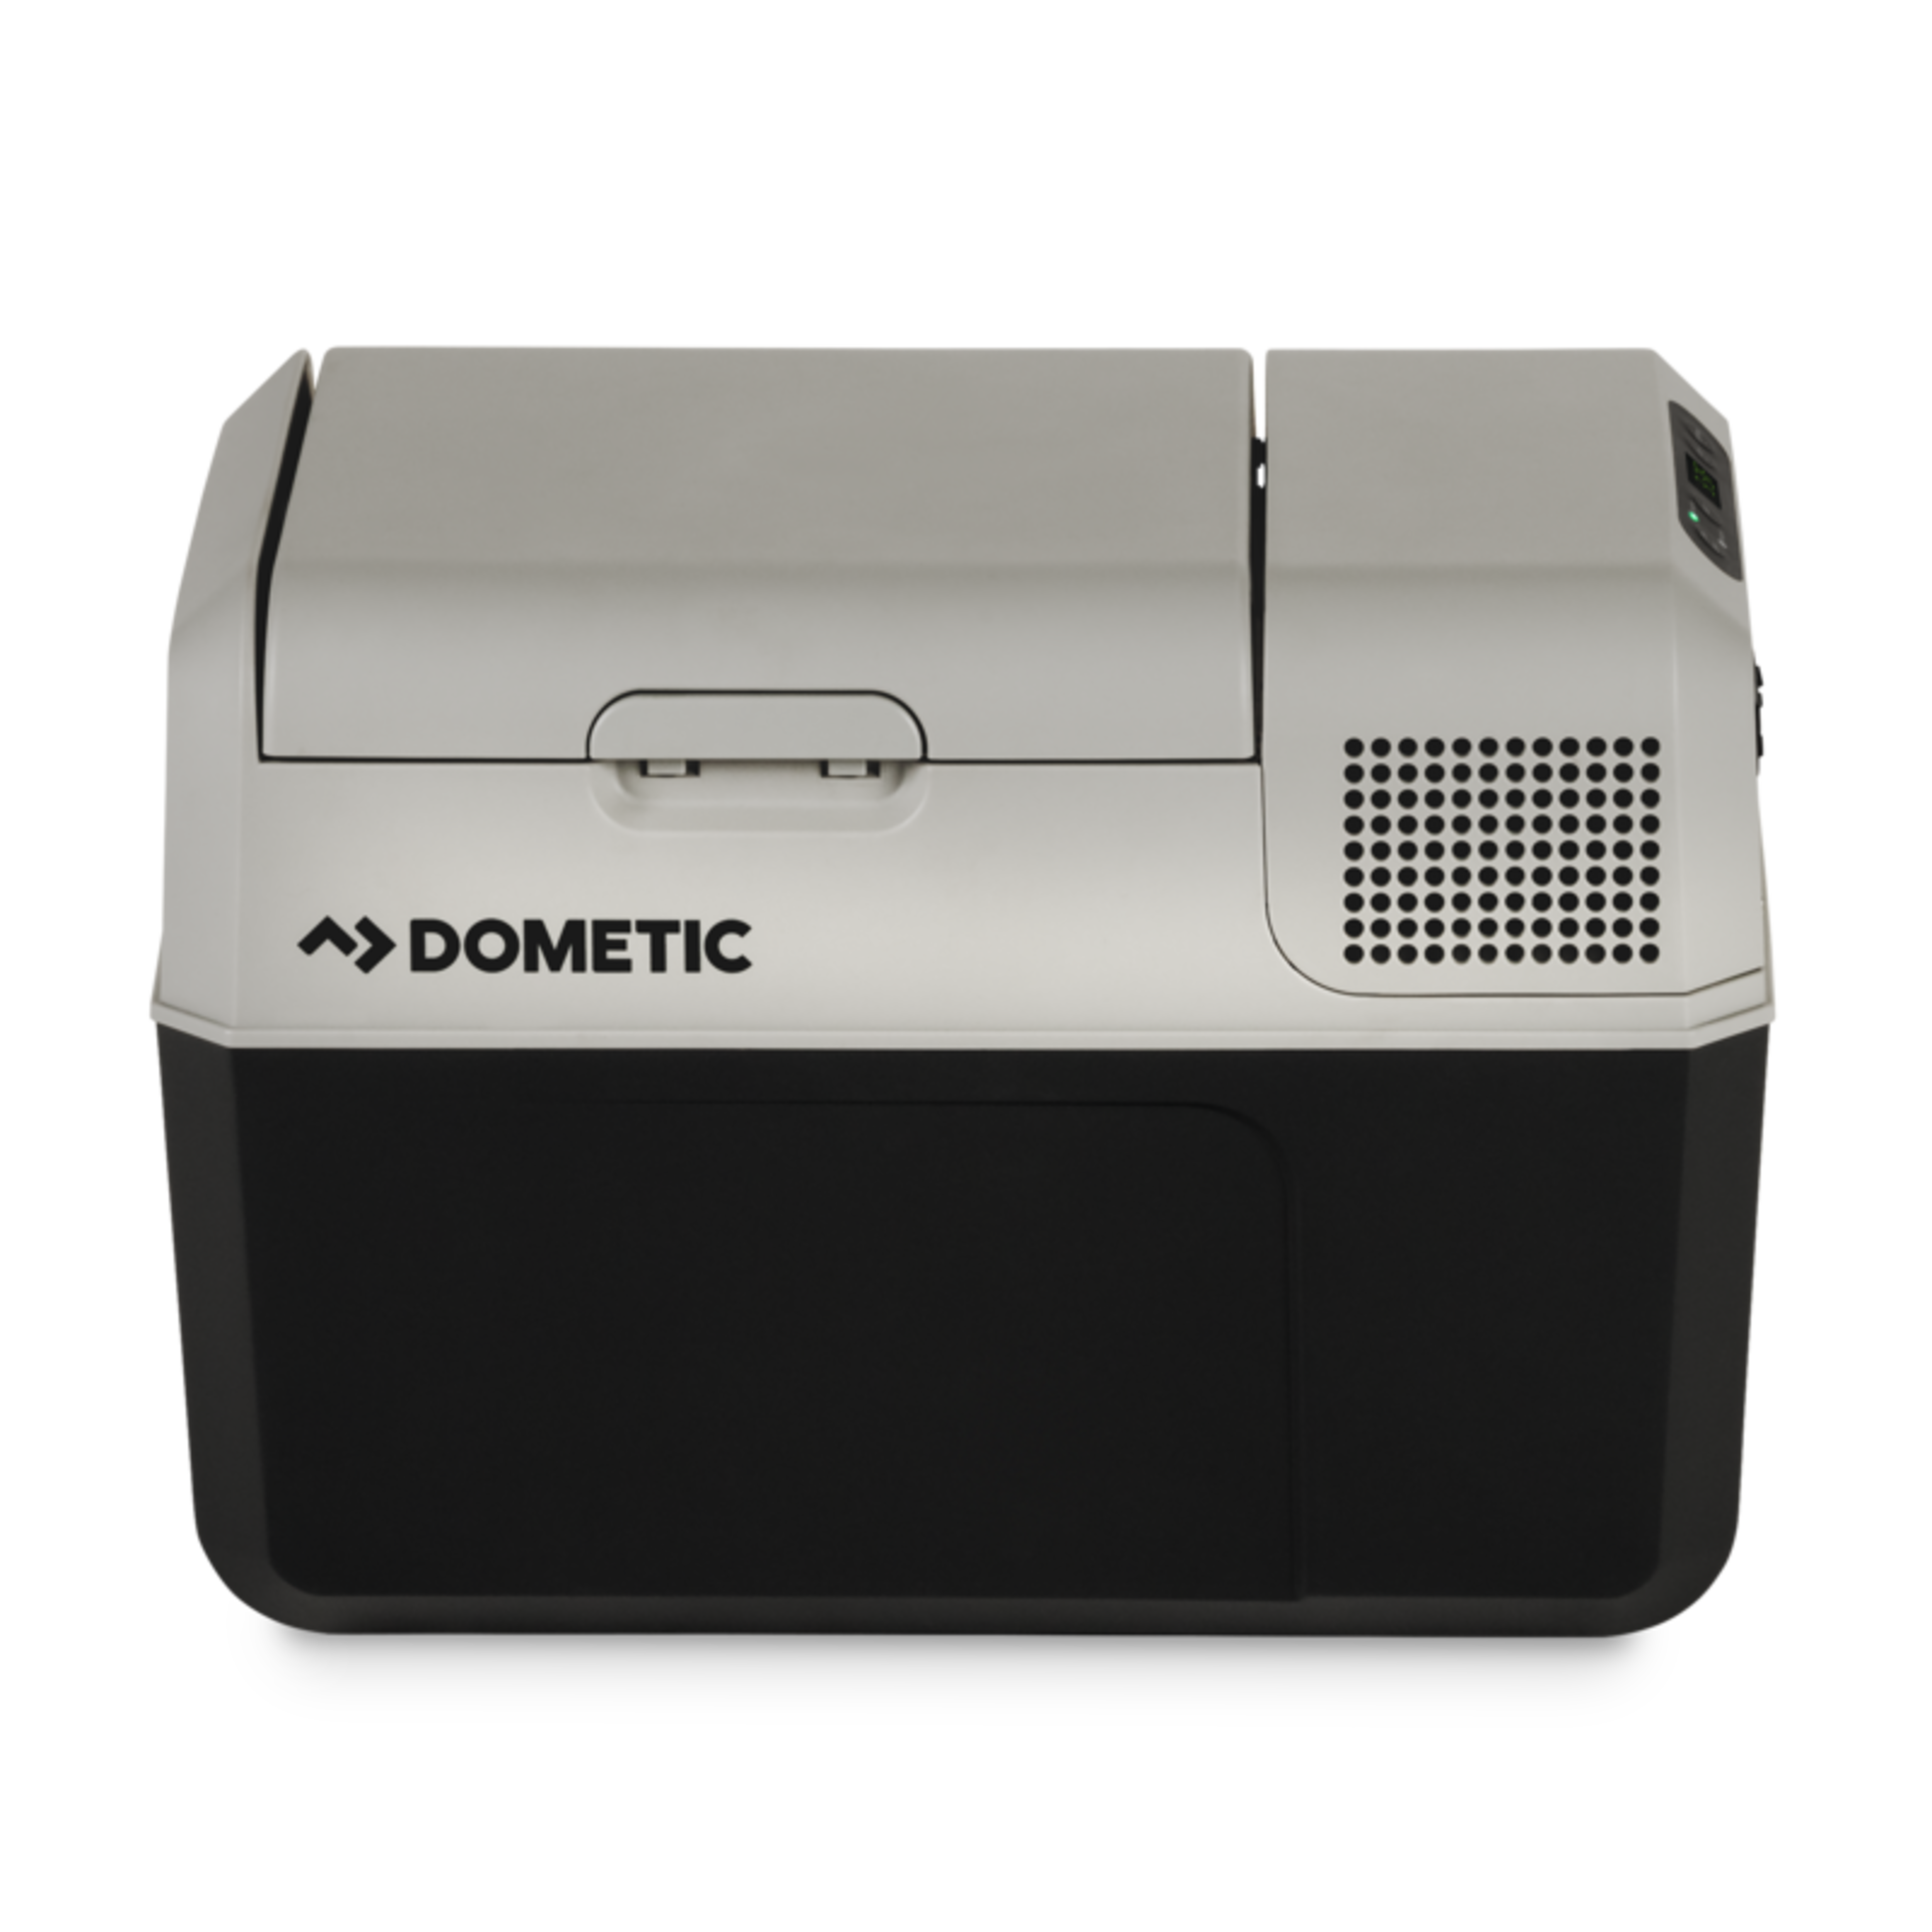 Dometic CC32-ACDC Portable Refrigerator/Freezer